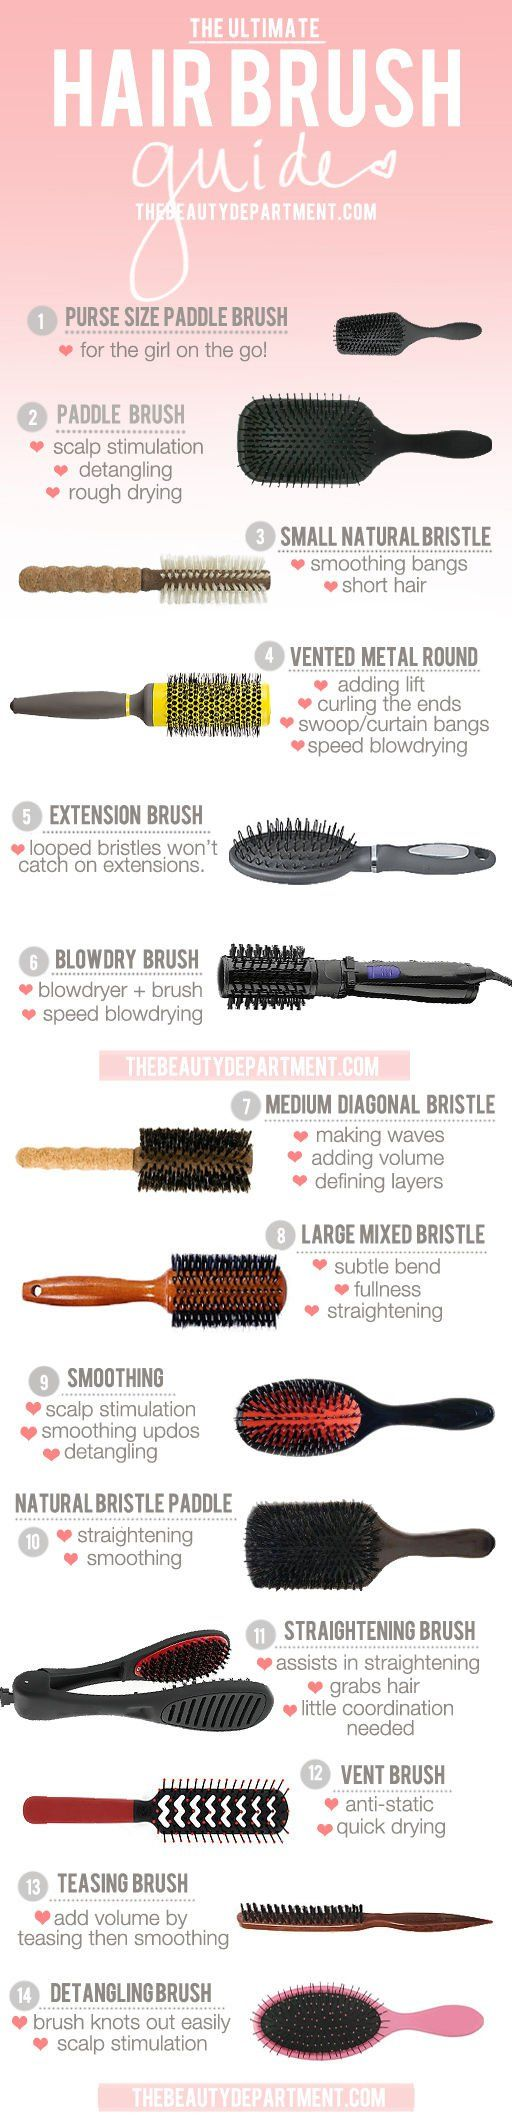 The Best Hair Brush For Your Hair Type | Here's A Great List Of Beauty Tips That Will Really Help Your Hair A Lot! by Makeup Tutorials at   http://makeuptutorials.com/best-hair-brush-makeup-tutorials